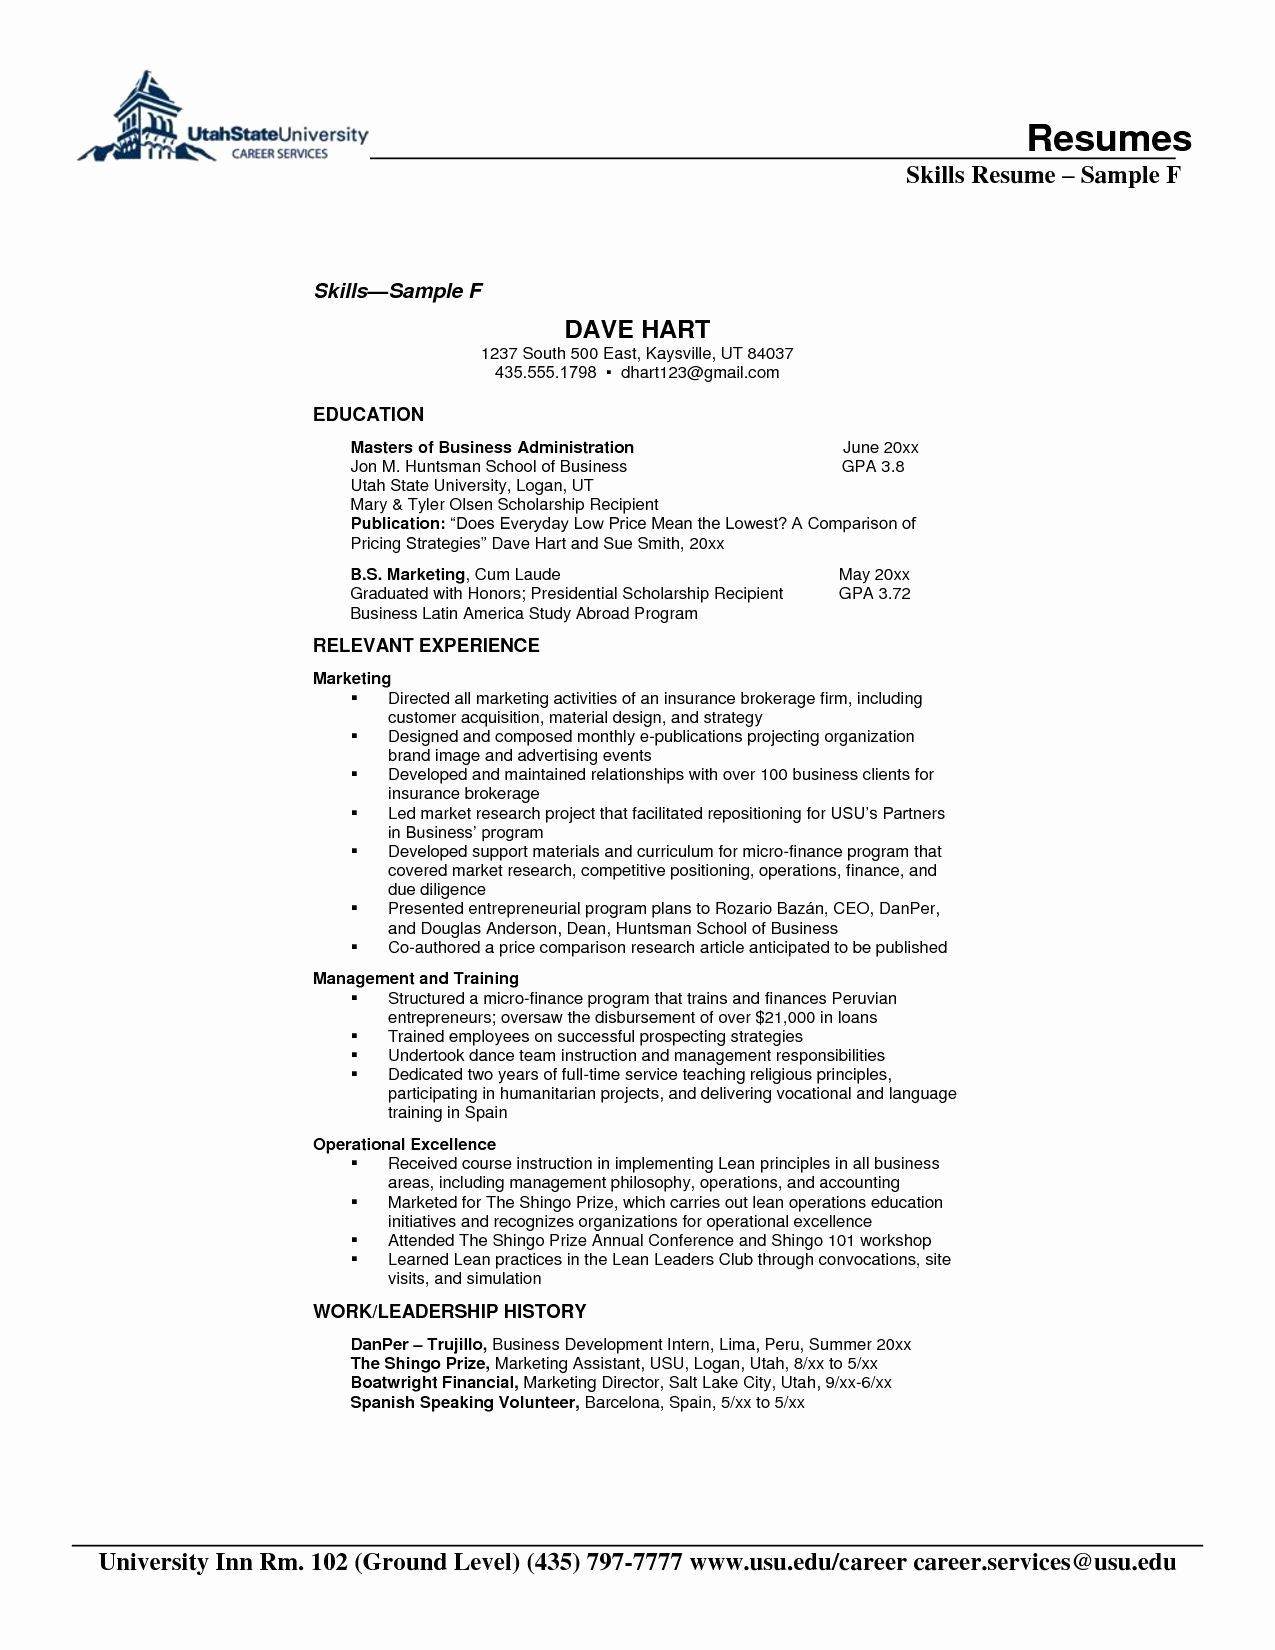 20 5 Years Experience Resume in 2020 (With images